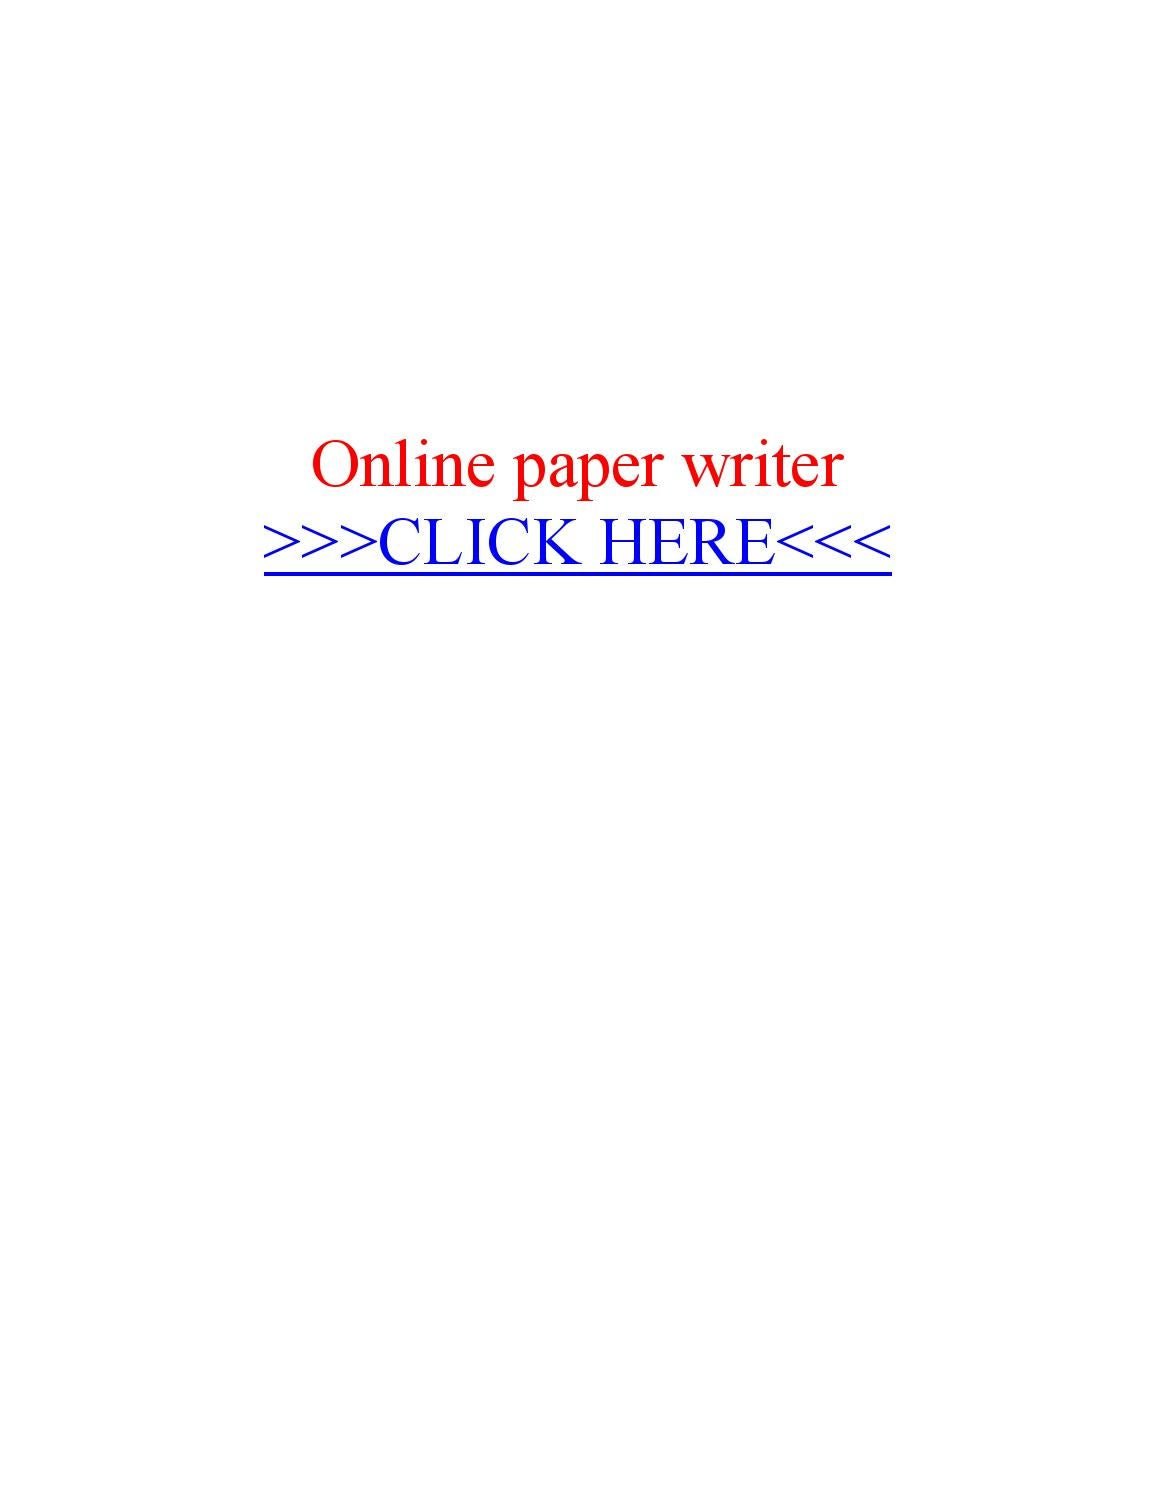 online paper writer by essay writer service issuu